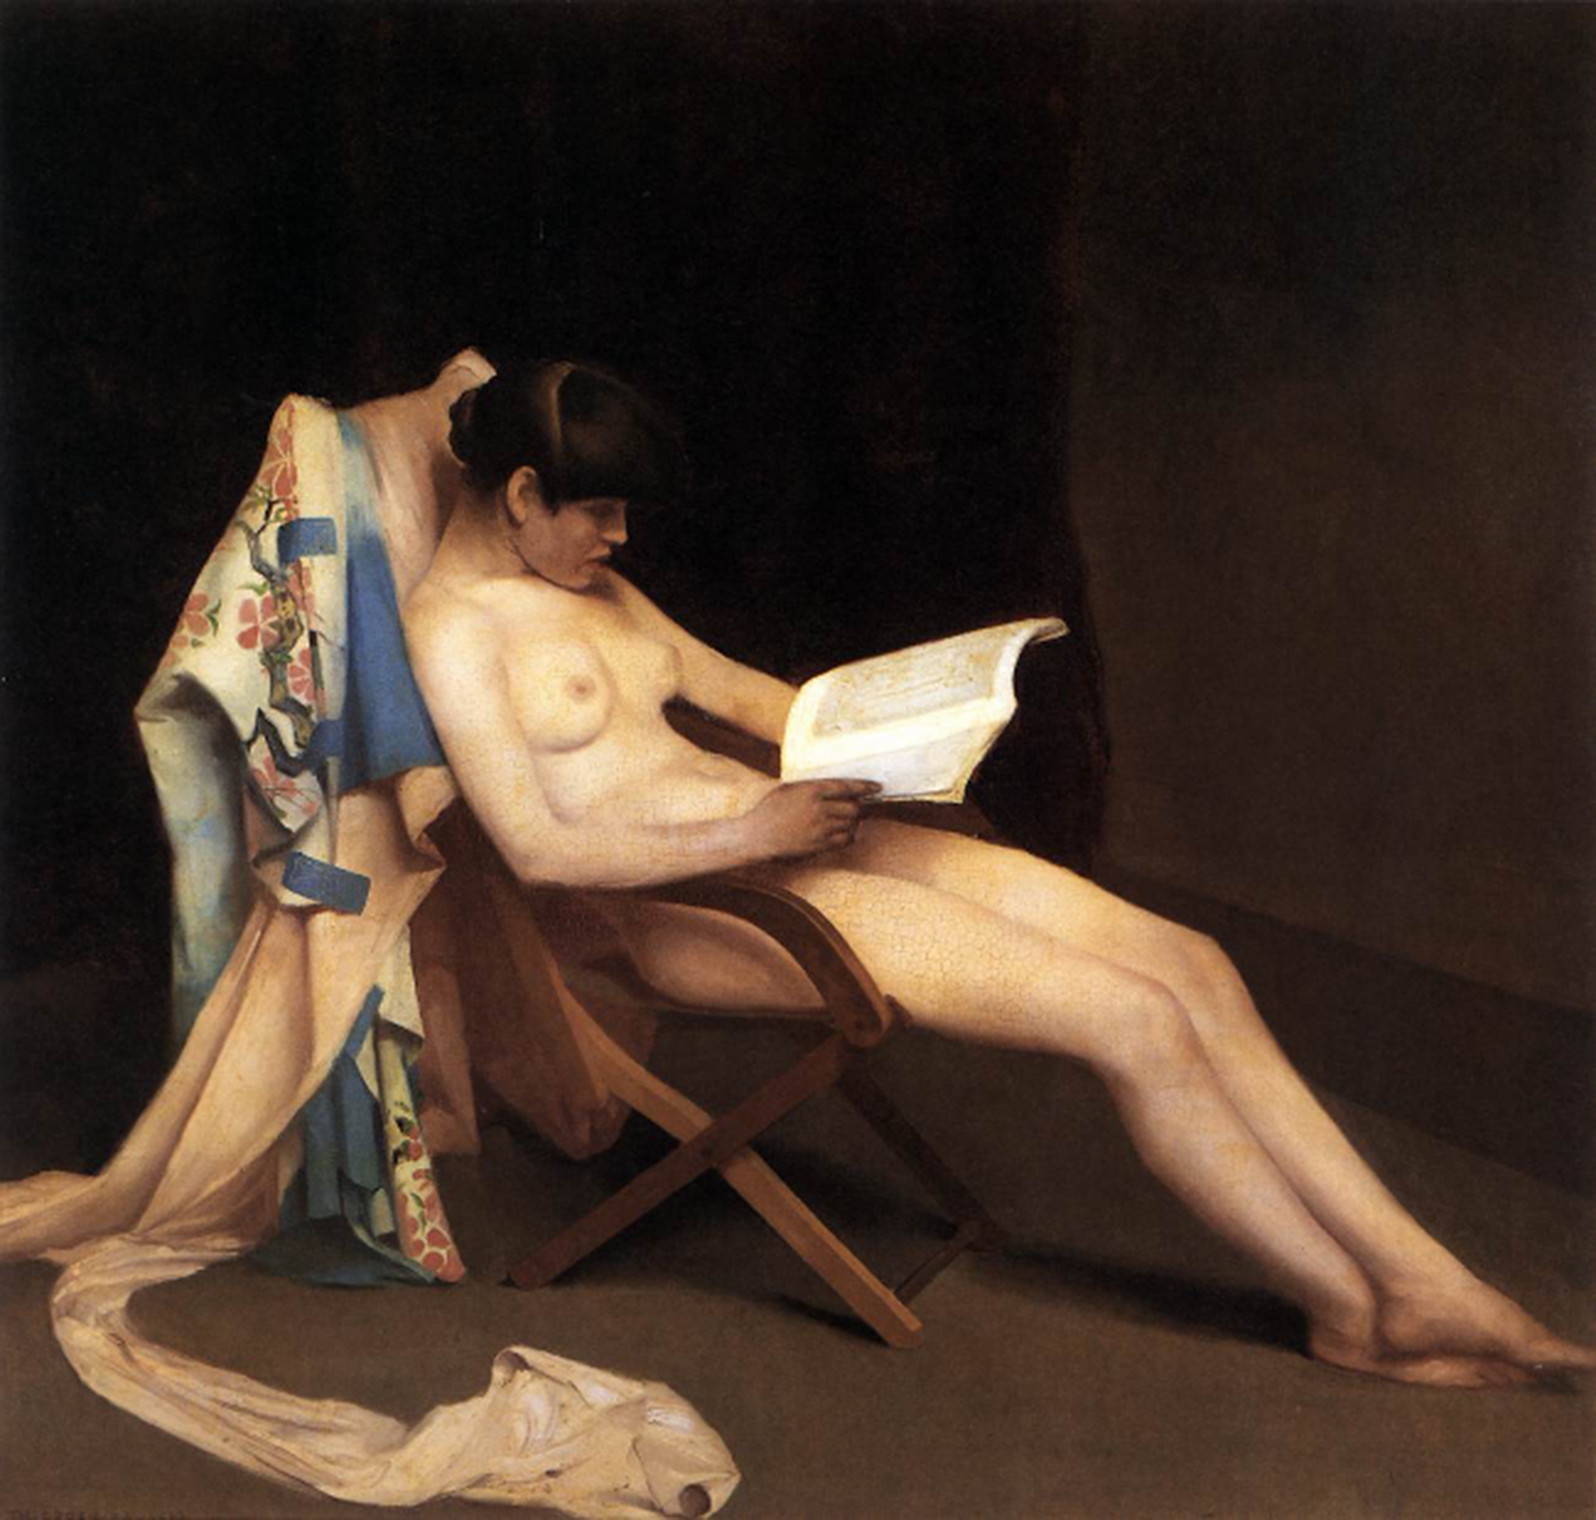 <p><b><i>The Reading Girl</i>, 1887<br/>Theodore Roussel</b><br/><br/></p>